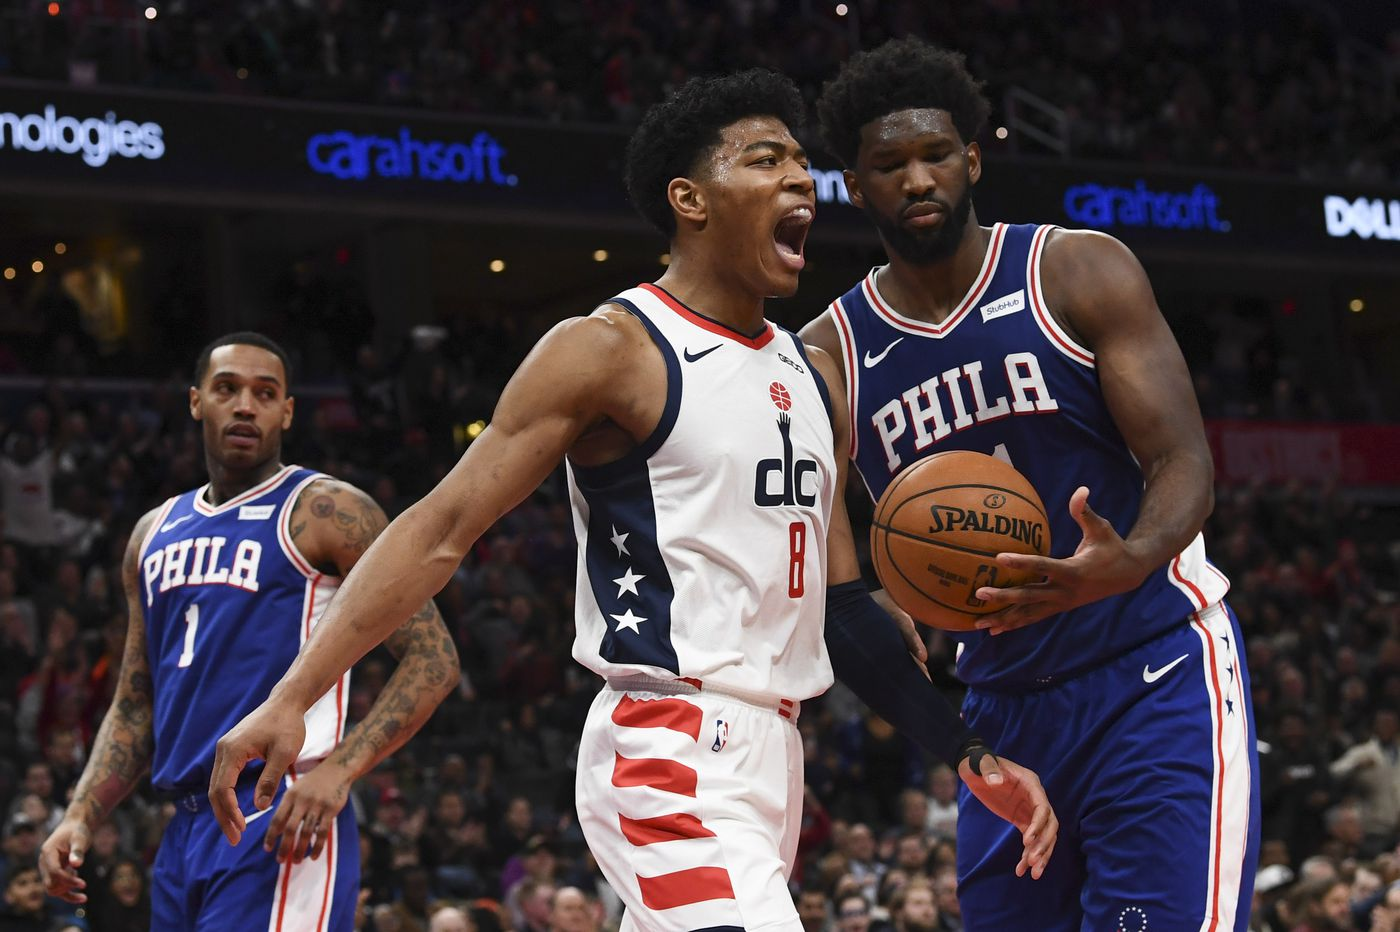 Sixers didn't take Wizards seriously until it was too late in Thursday's loss in Washington